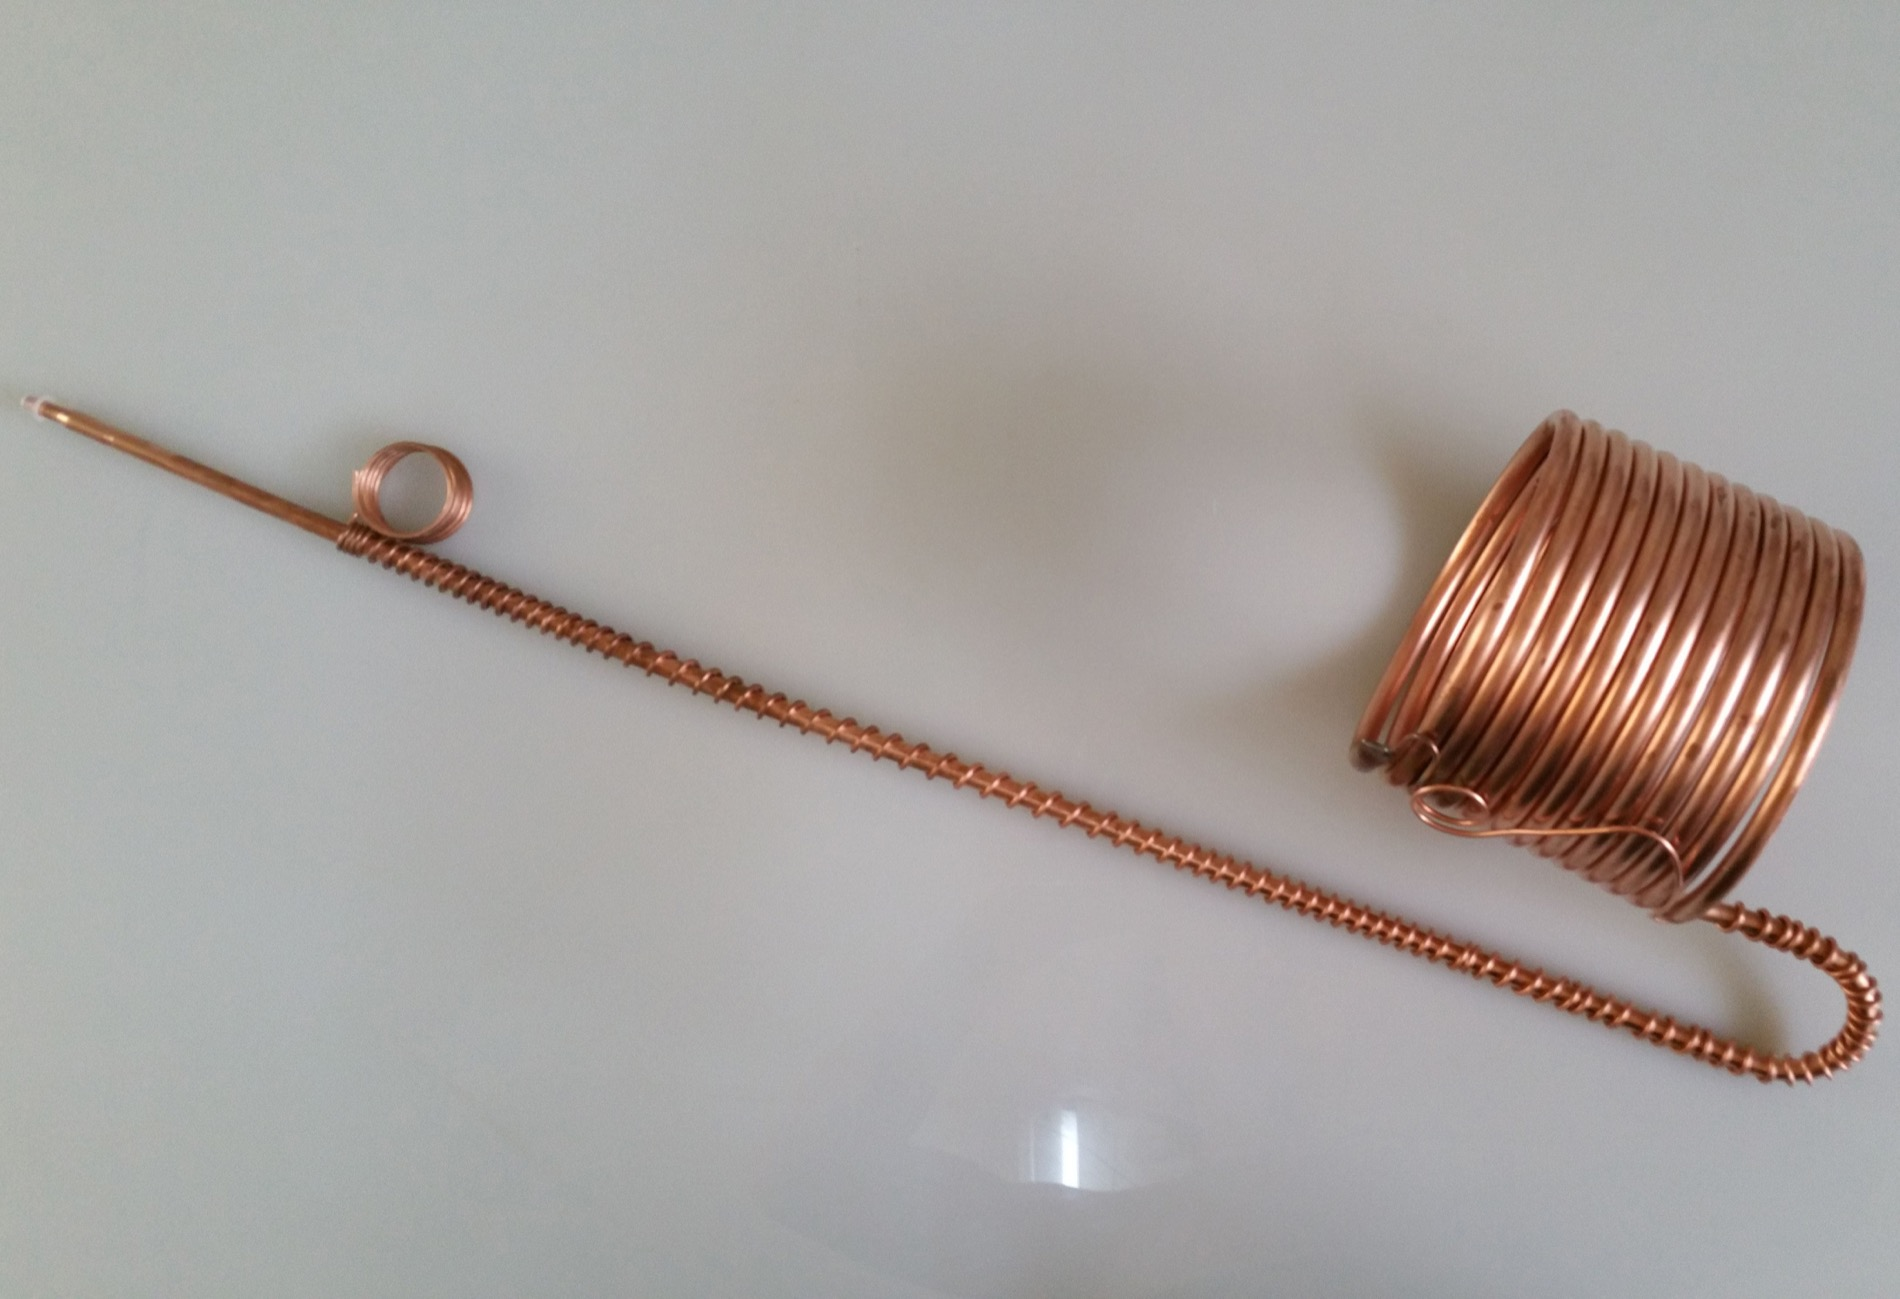 copper cilindrical coil evaporator cooling system water, feeding tube, soldering